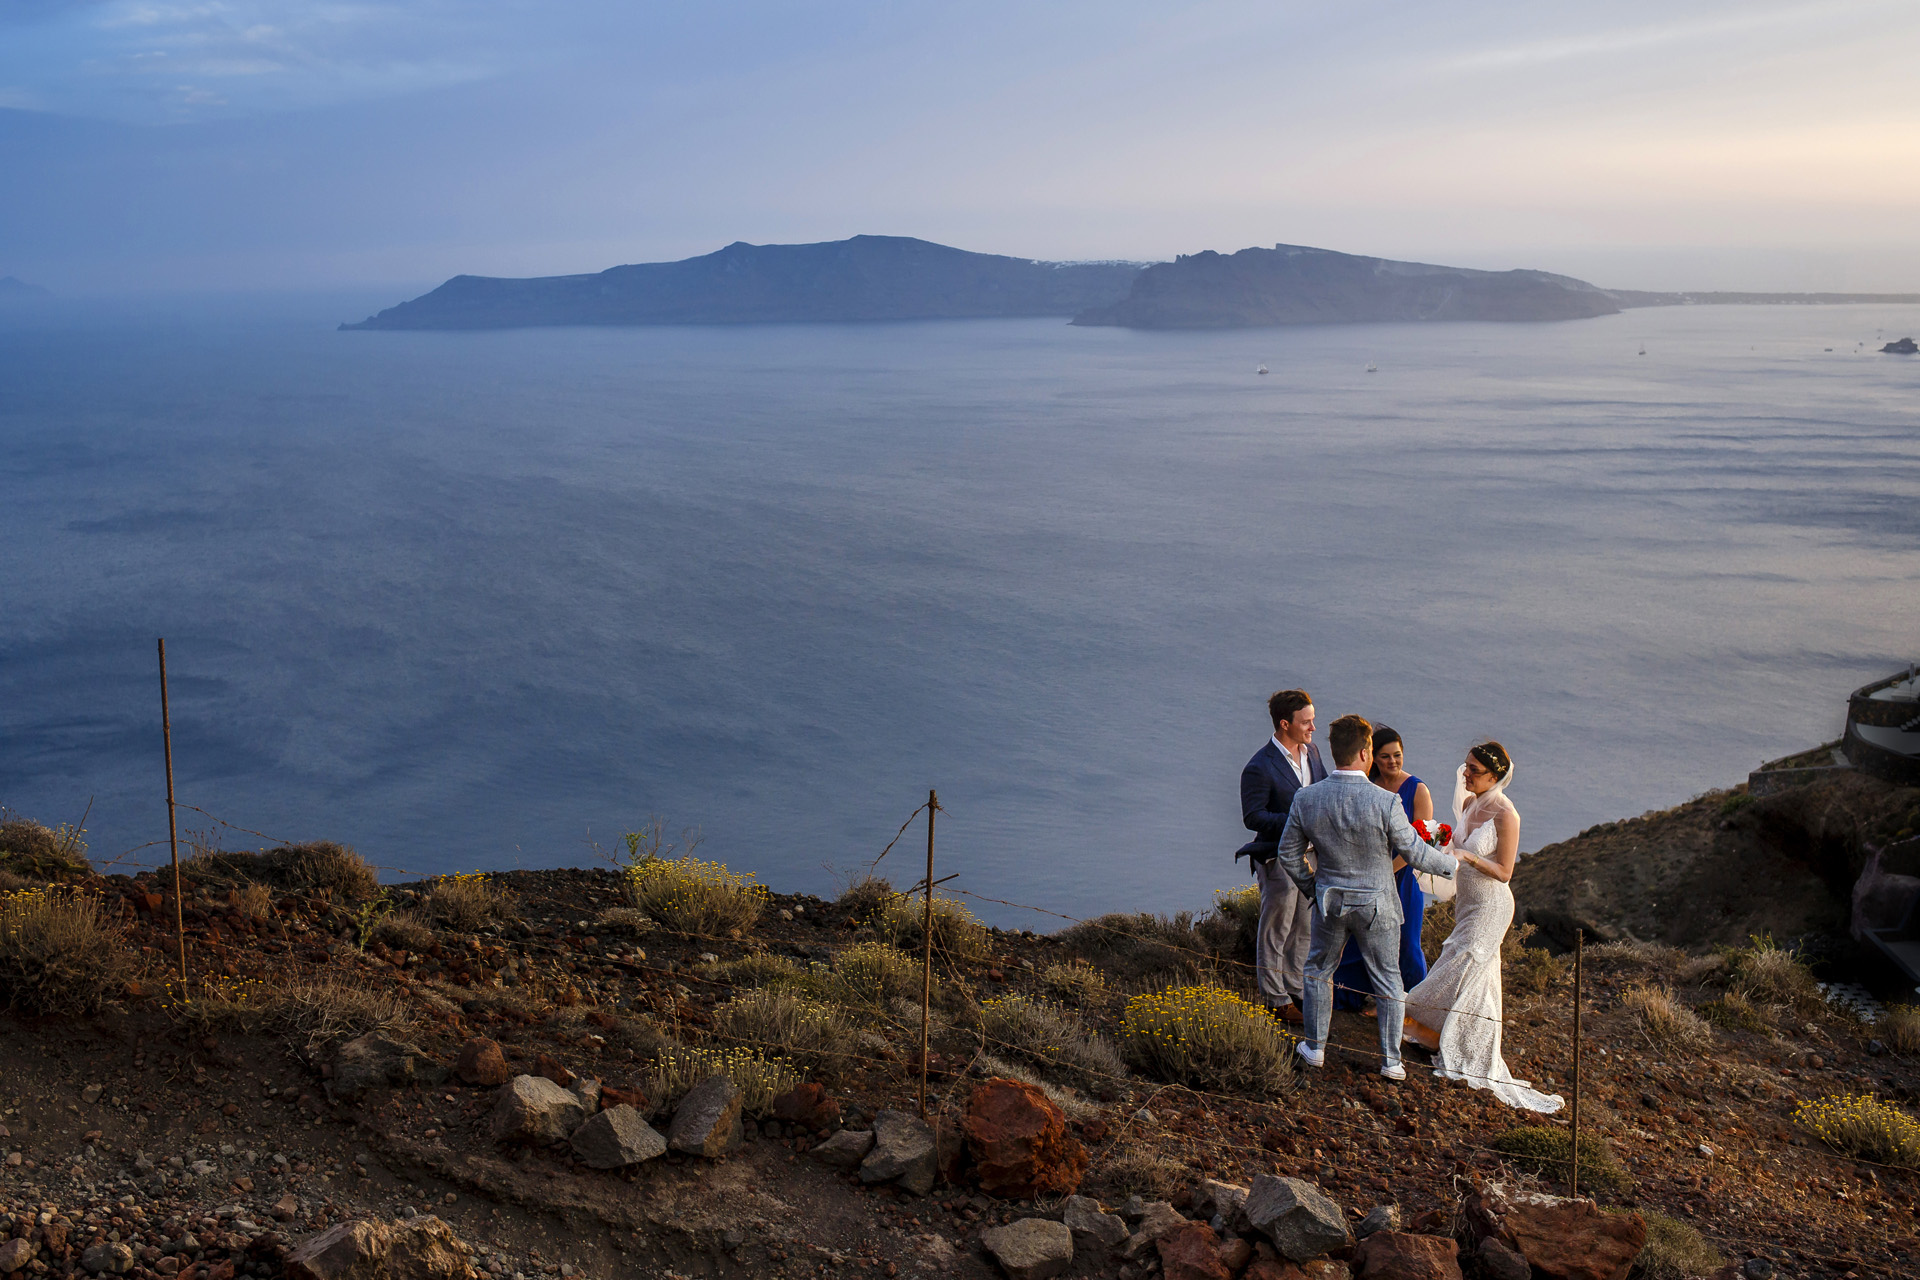 Fira, Santorini, Greece Elopement Ceremony Photography | after climbing the rocks, We came together at sunset